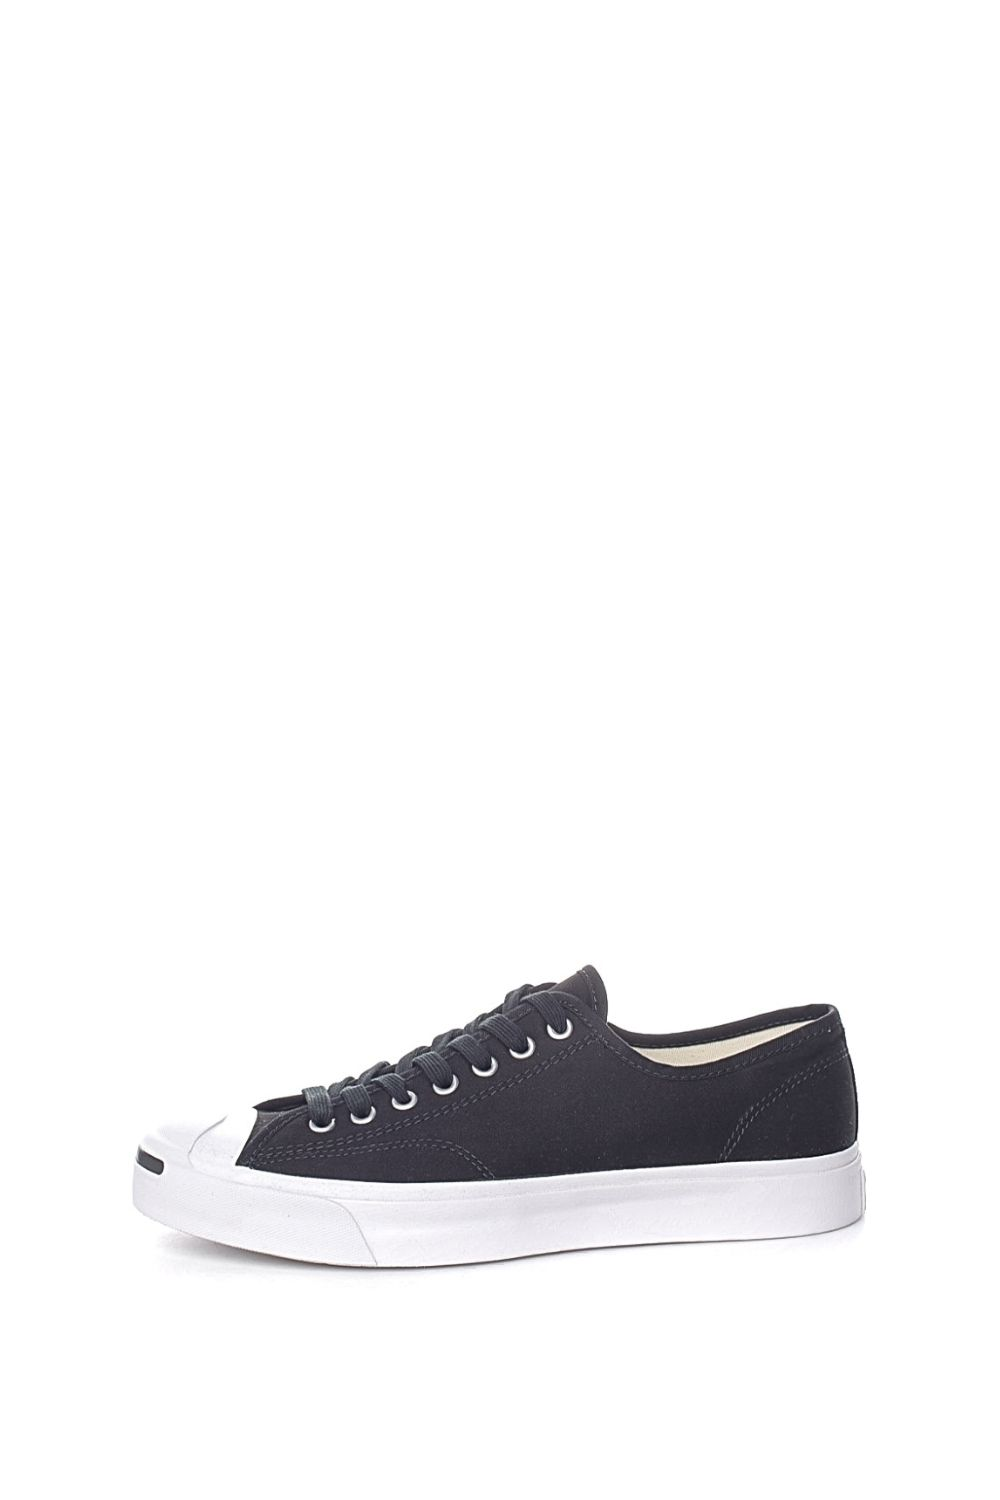 CONVERSE – Unisex sneakers CONVERSE Jack Purcell 1st in class μαύρα